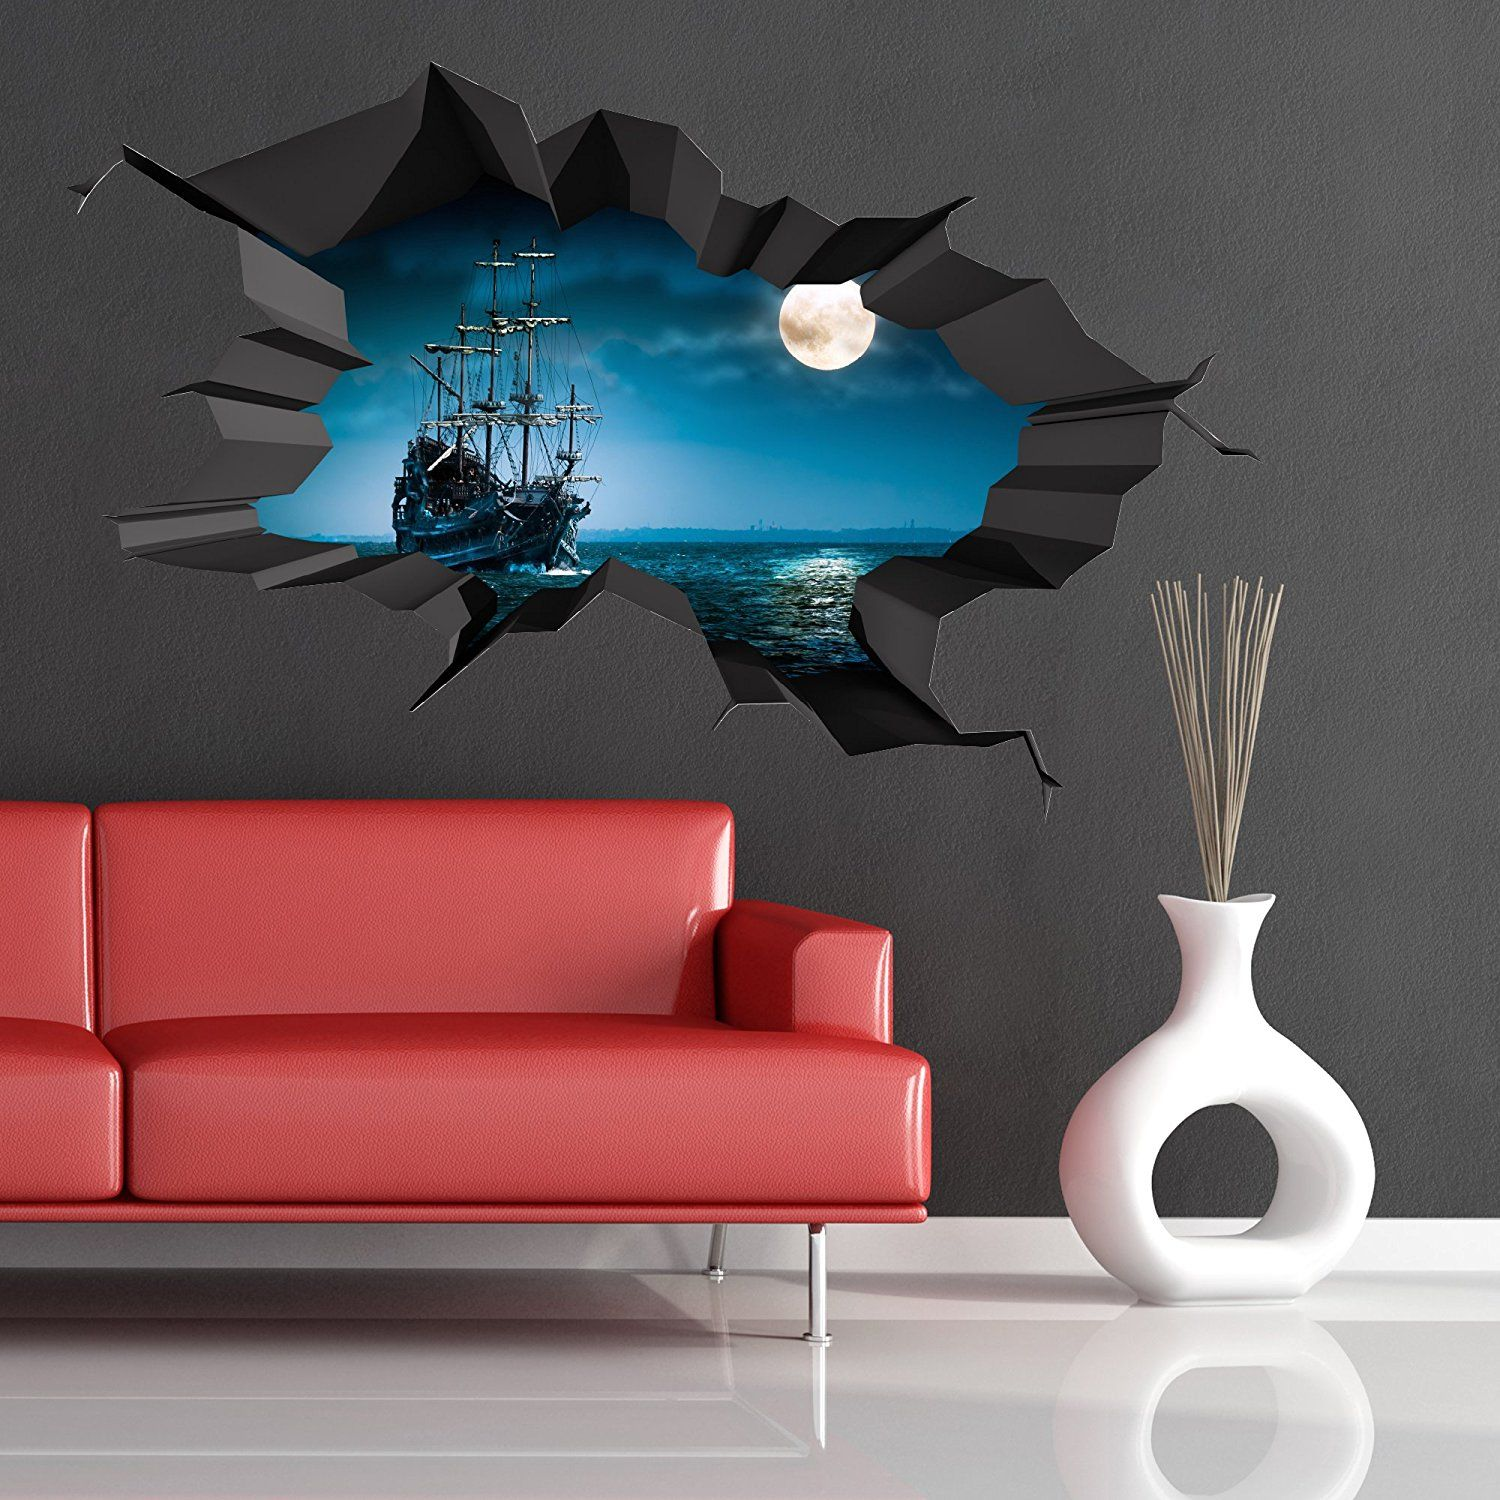 3D Wall Art Captivating Pirate Ship Sea Cave Porthole Moon Cracked 3D Wall Art Sticker Review